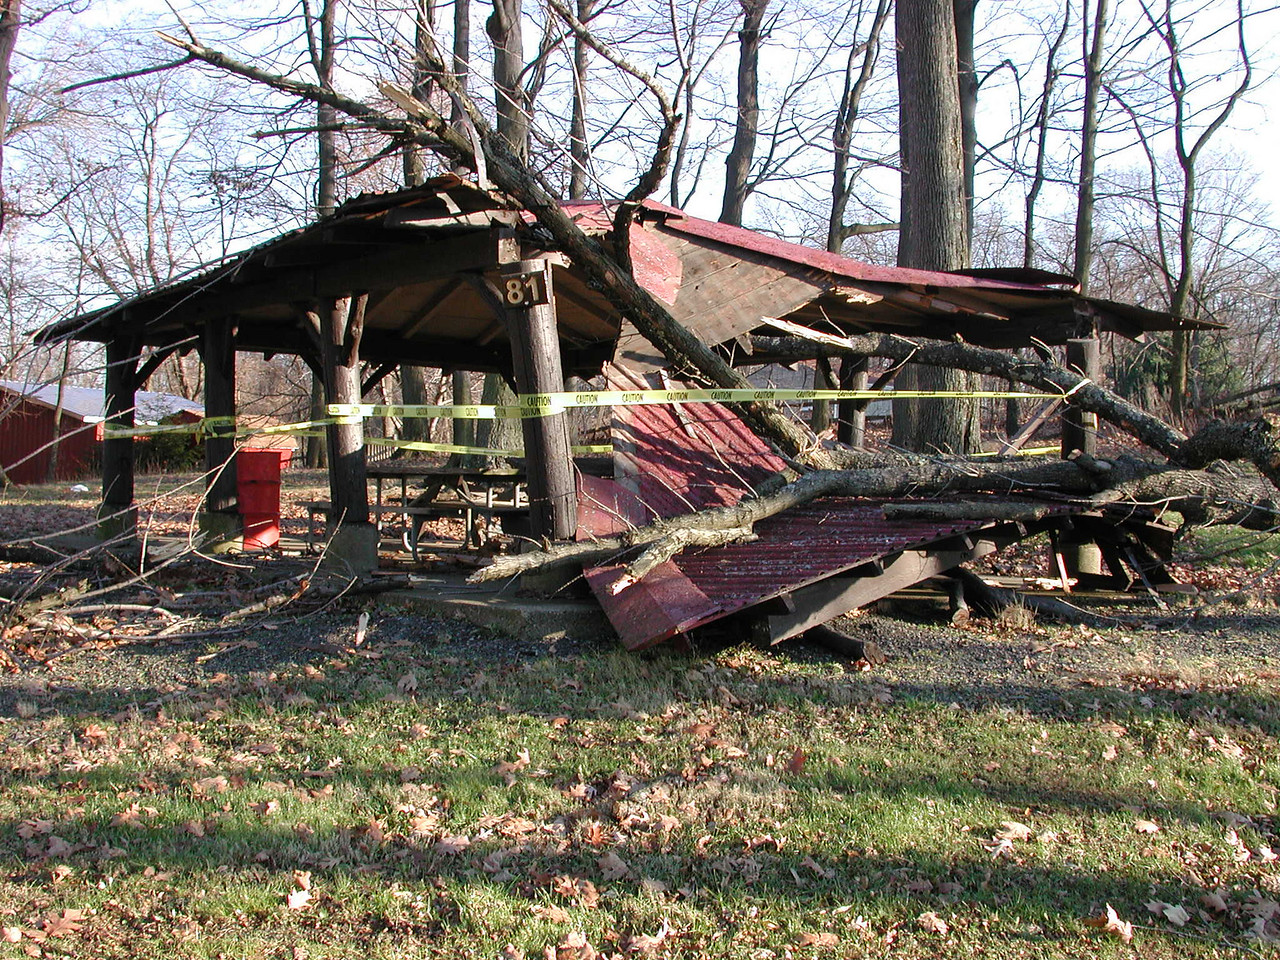 This is the pavillion in the park right next to my house. A big storm broke a tree on this little house and crushed it all up.